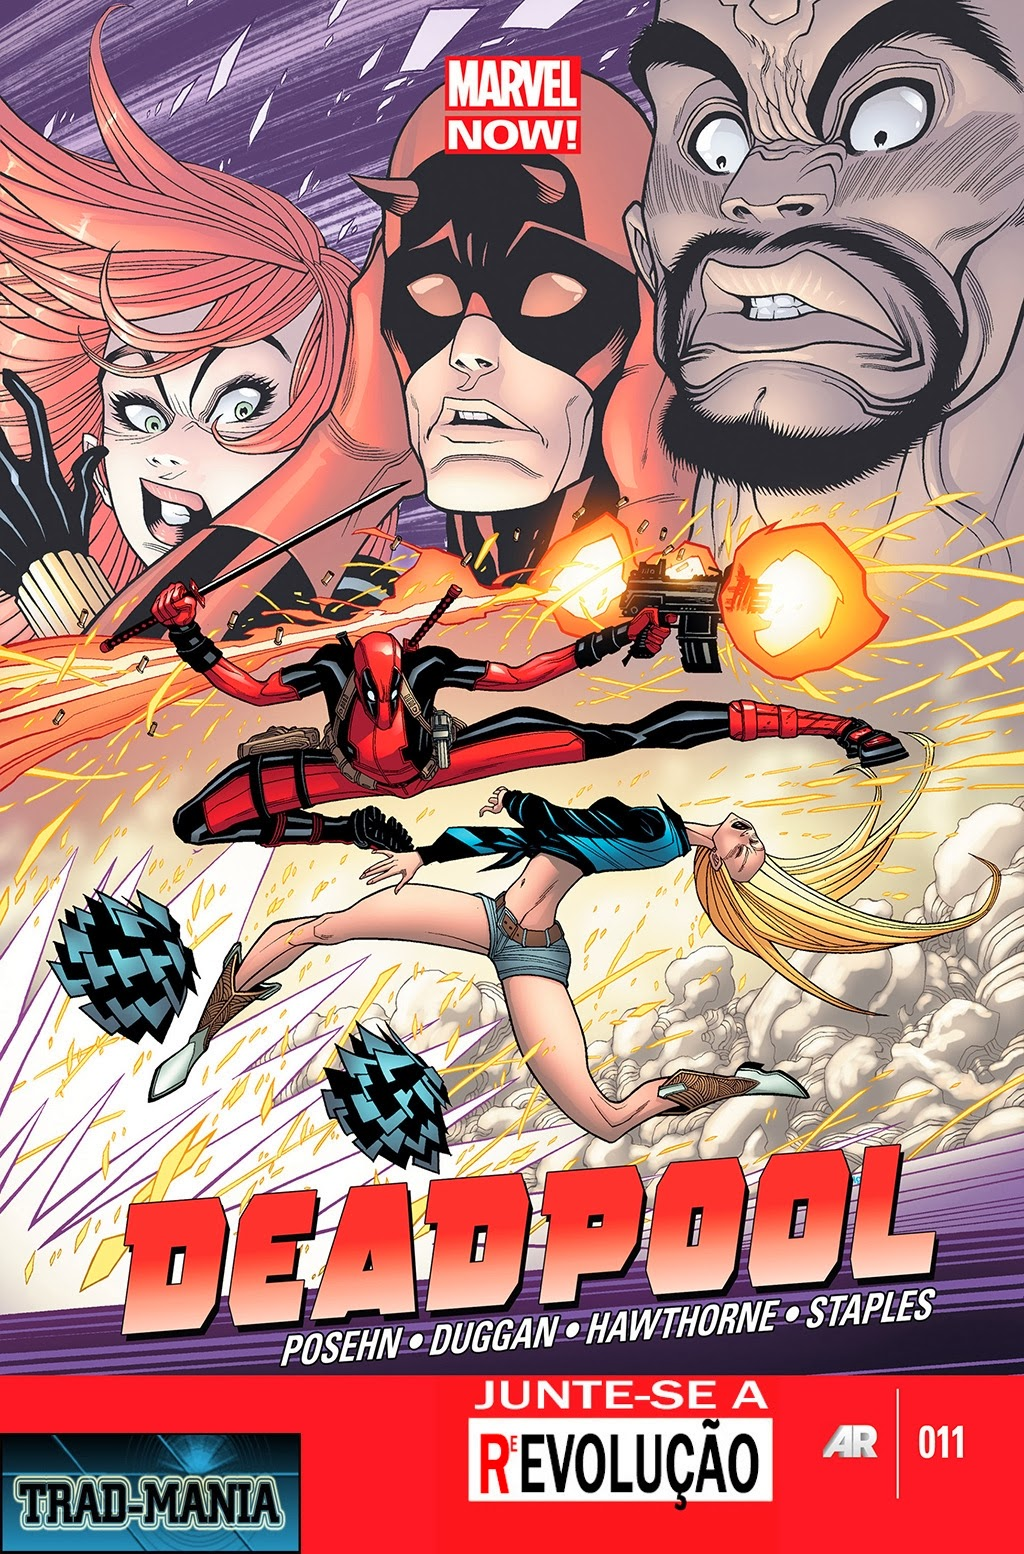 Nova Marvel! Deadpool v5 #11